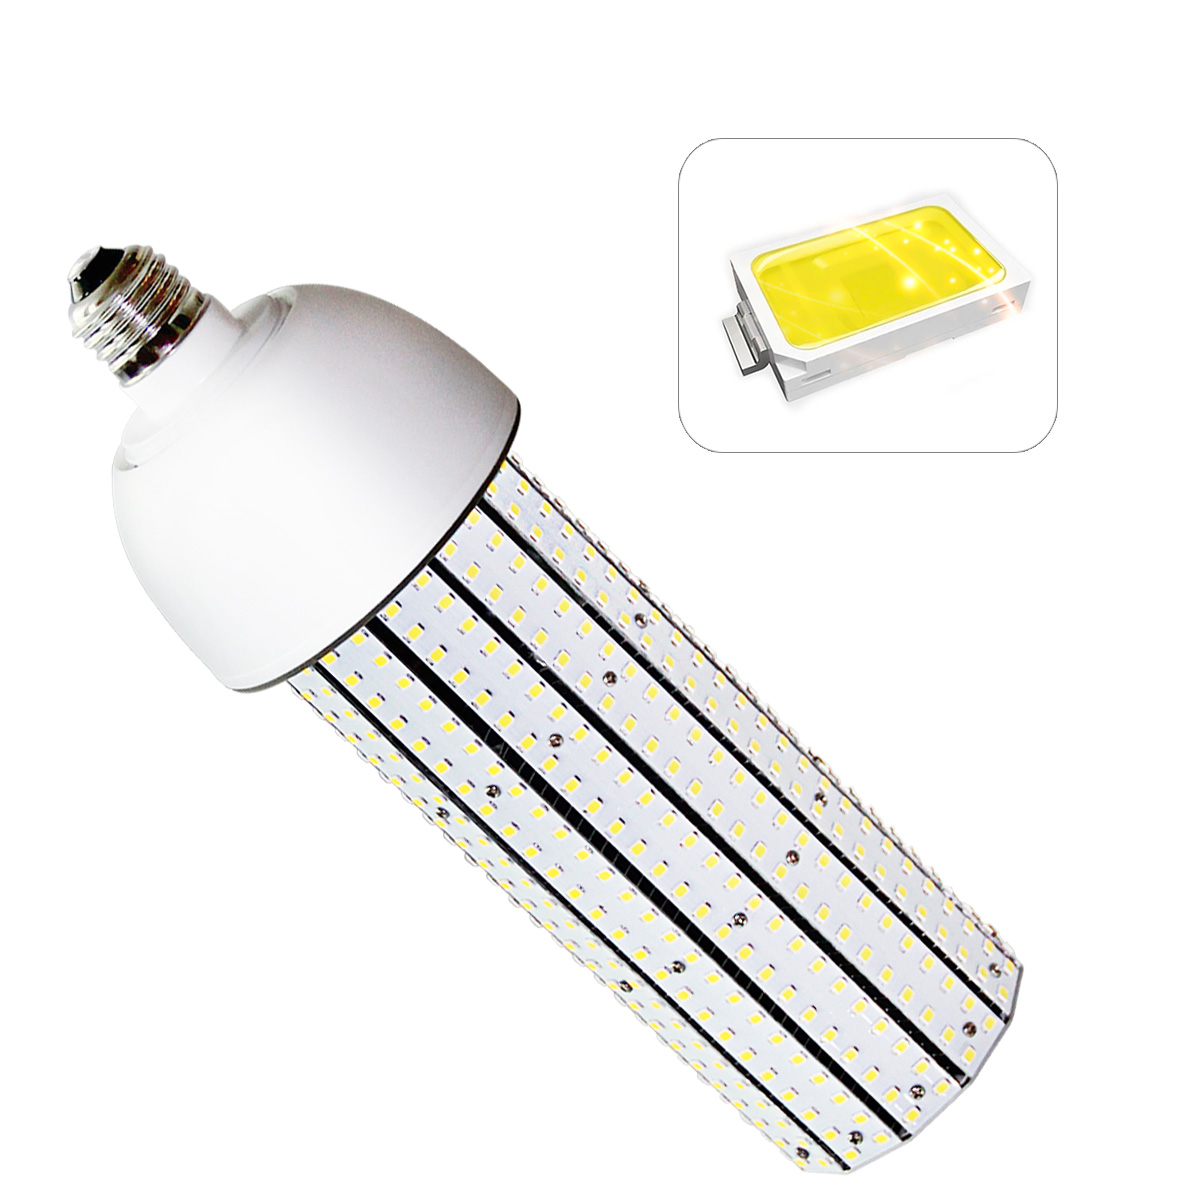 Kawell 60w led corn light bulb e39 large mogul base led commercial kawell 60w led corn light bulb e39 large mogul base led commercial retrofit bulb for fixtures aloadofball Choice Image